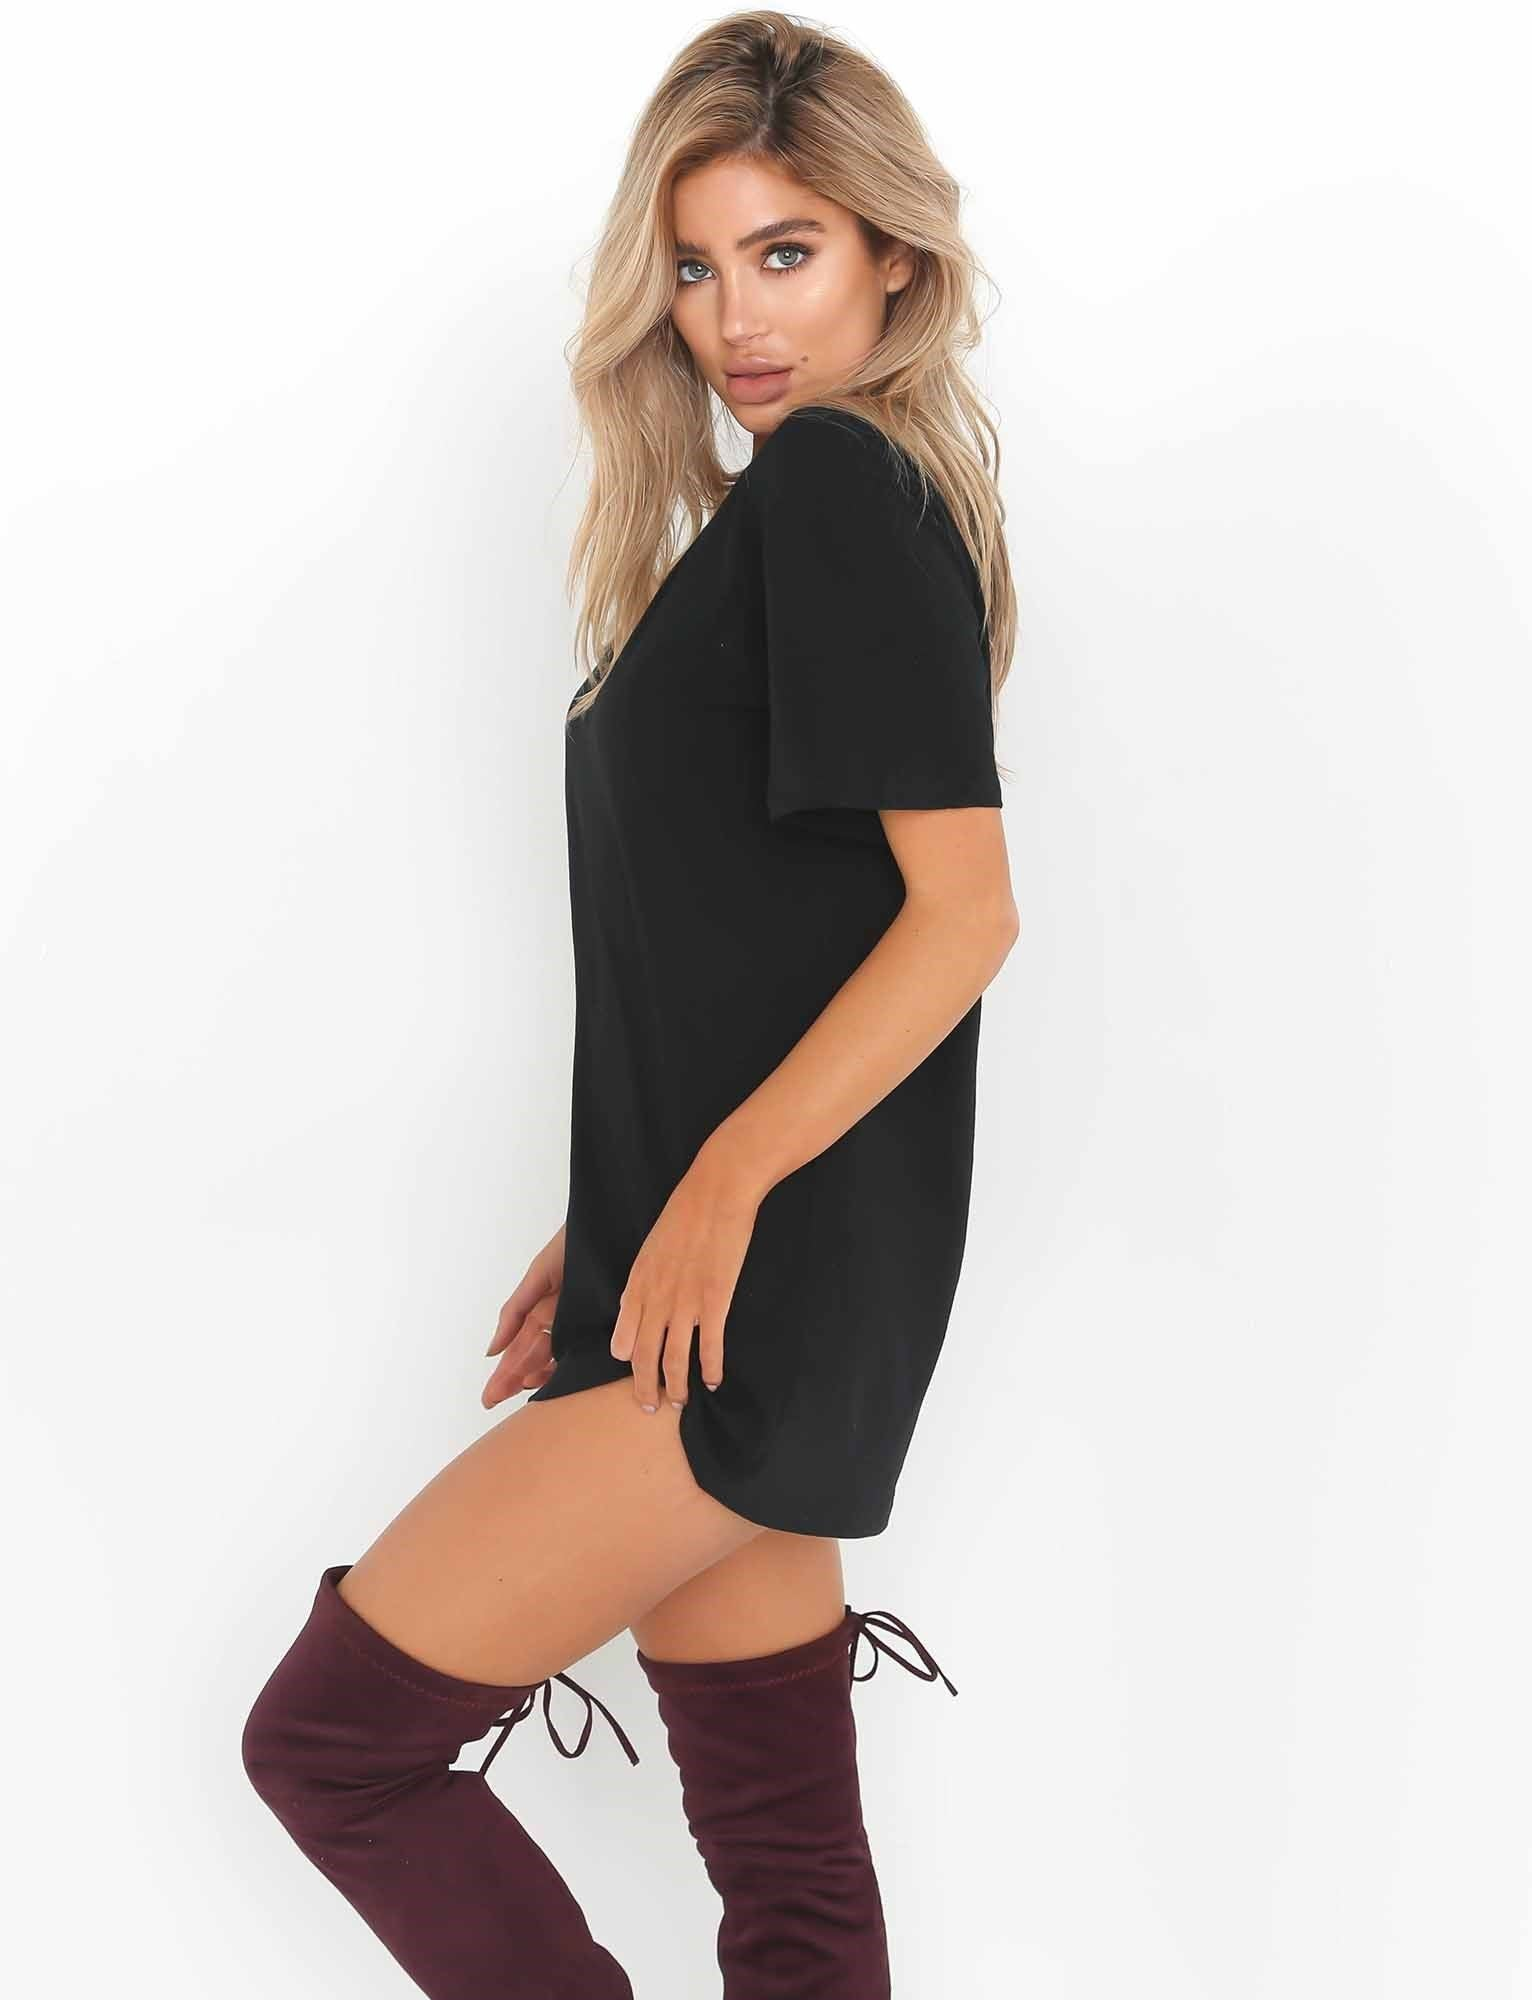 priscilla tee shirt dress